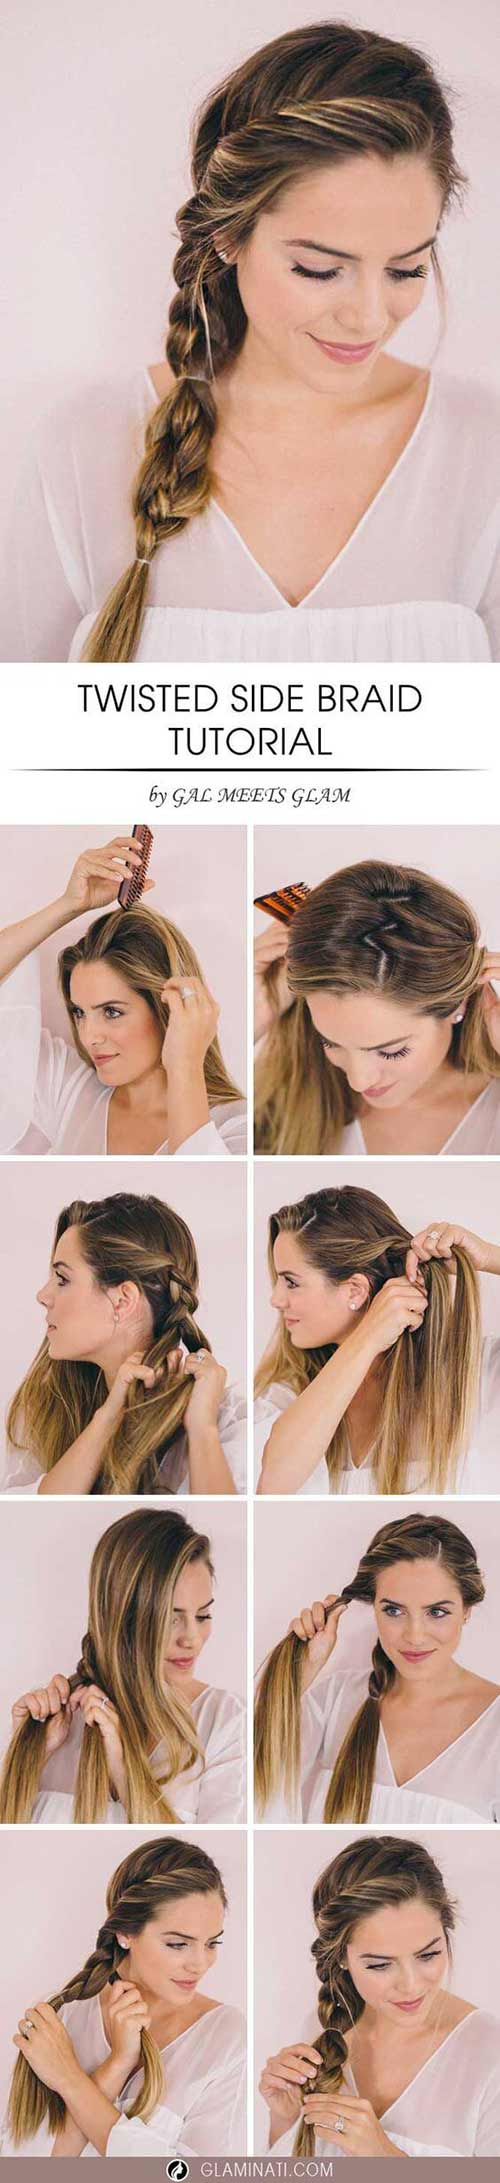 Twisted-Side-Braid Awesome Hairstyles For Girls With Long Hair